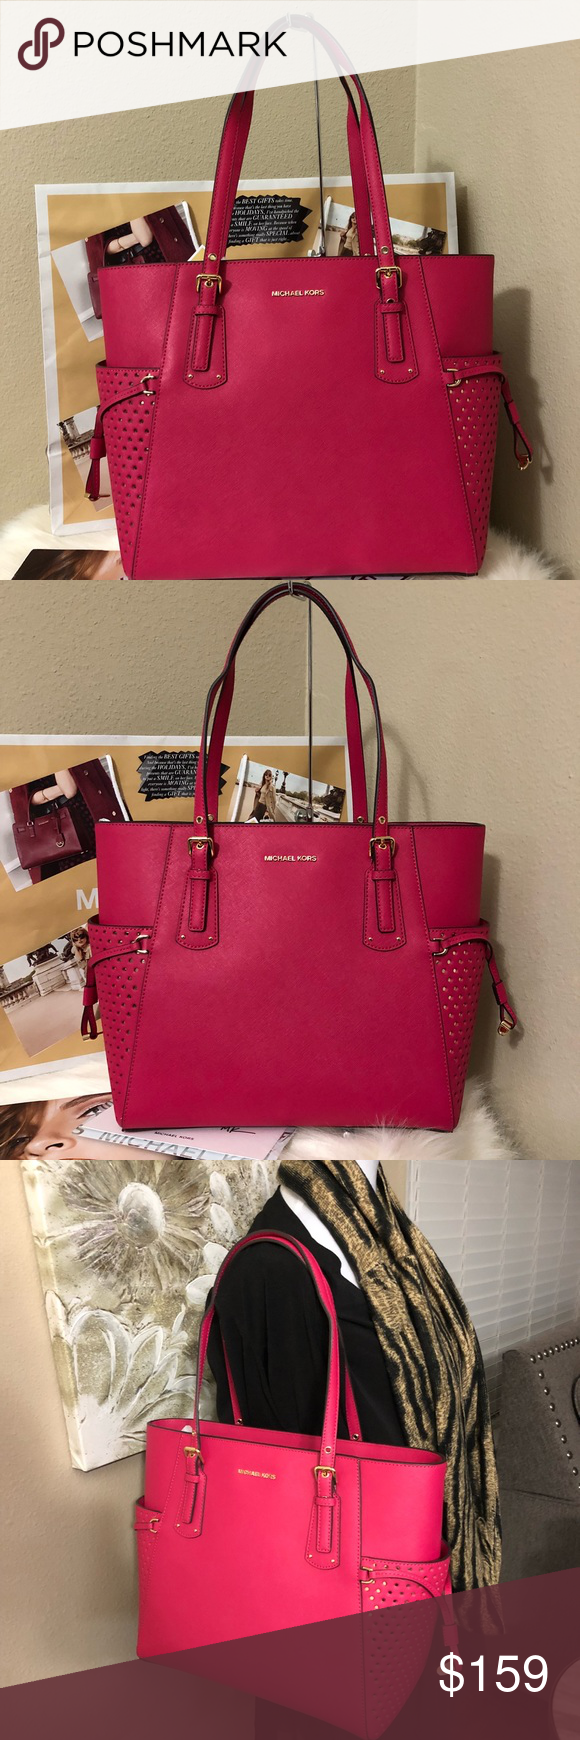 80d0be9c39f360 NWT Michael Kors Ultra Pink EW Jet Set Tote NWT Michael Kors Voyager  Saffiano Leather Tote